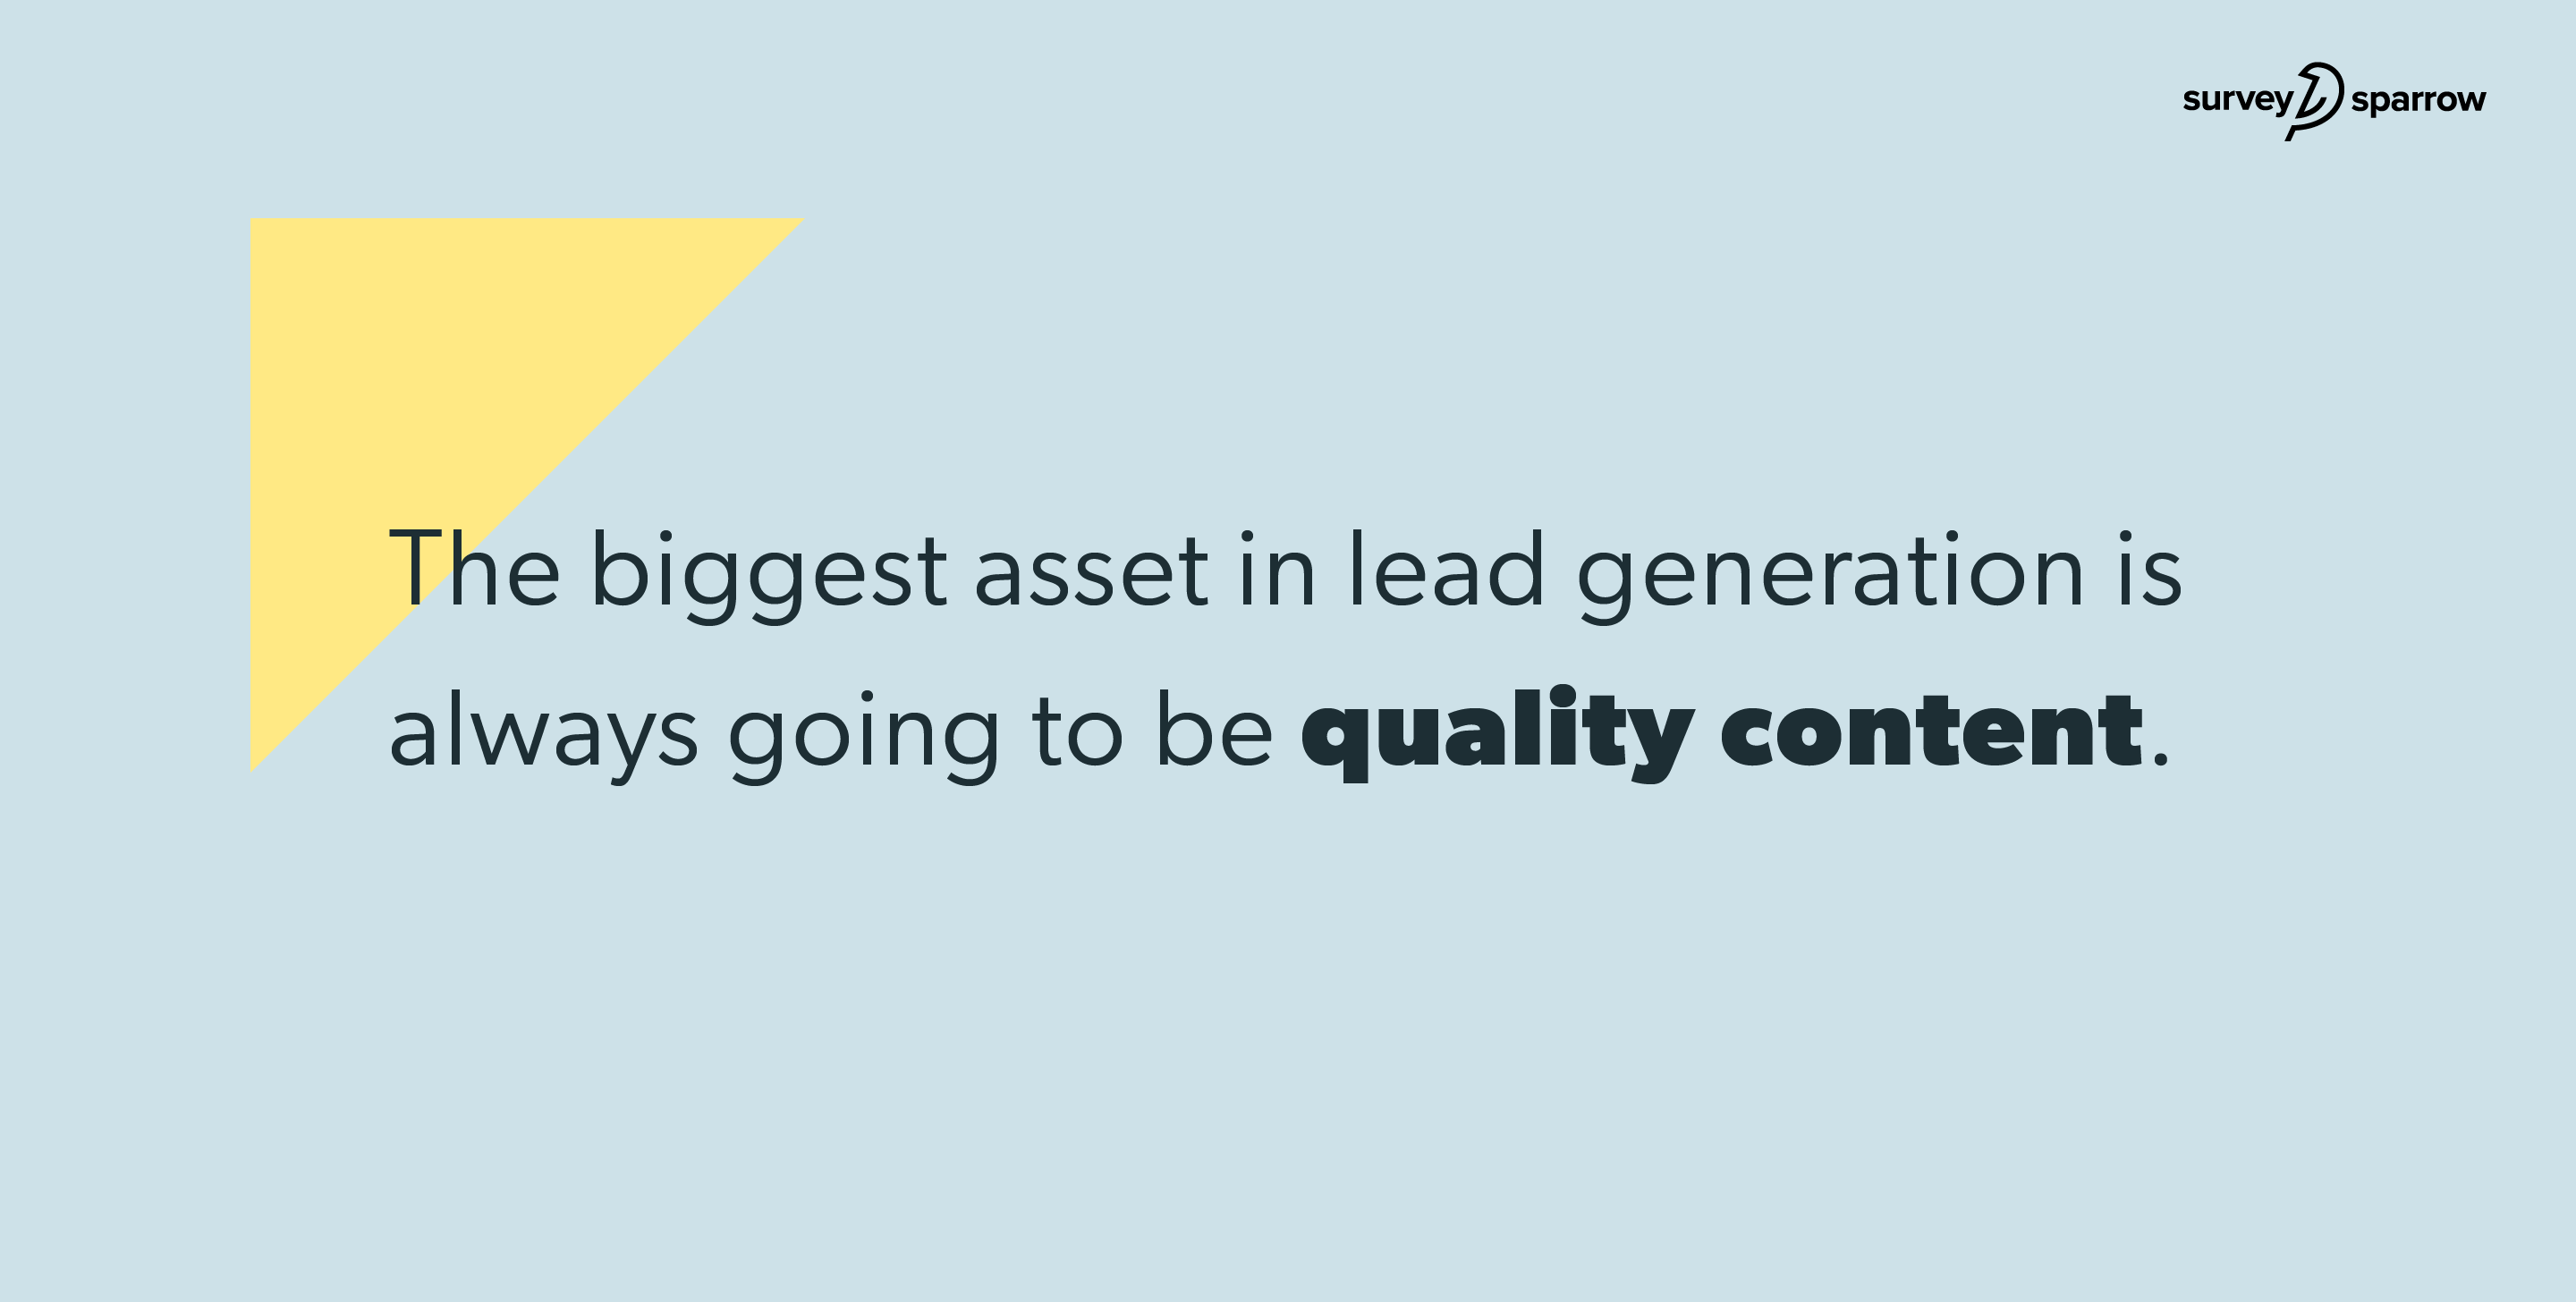 Lead Generation Strategy - Quality Content.